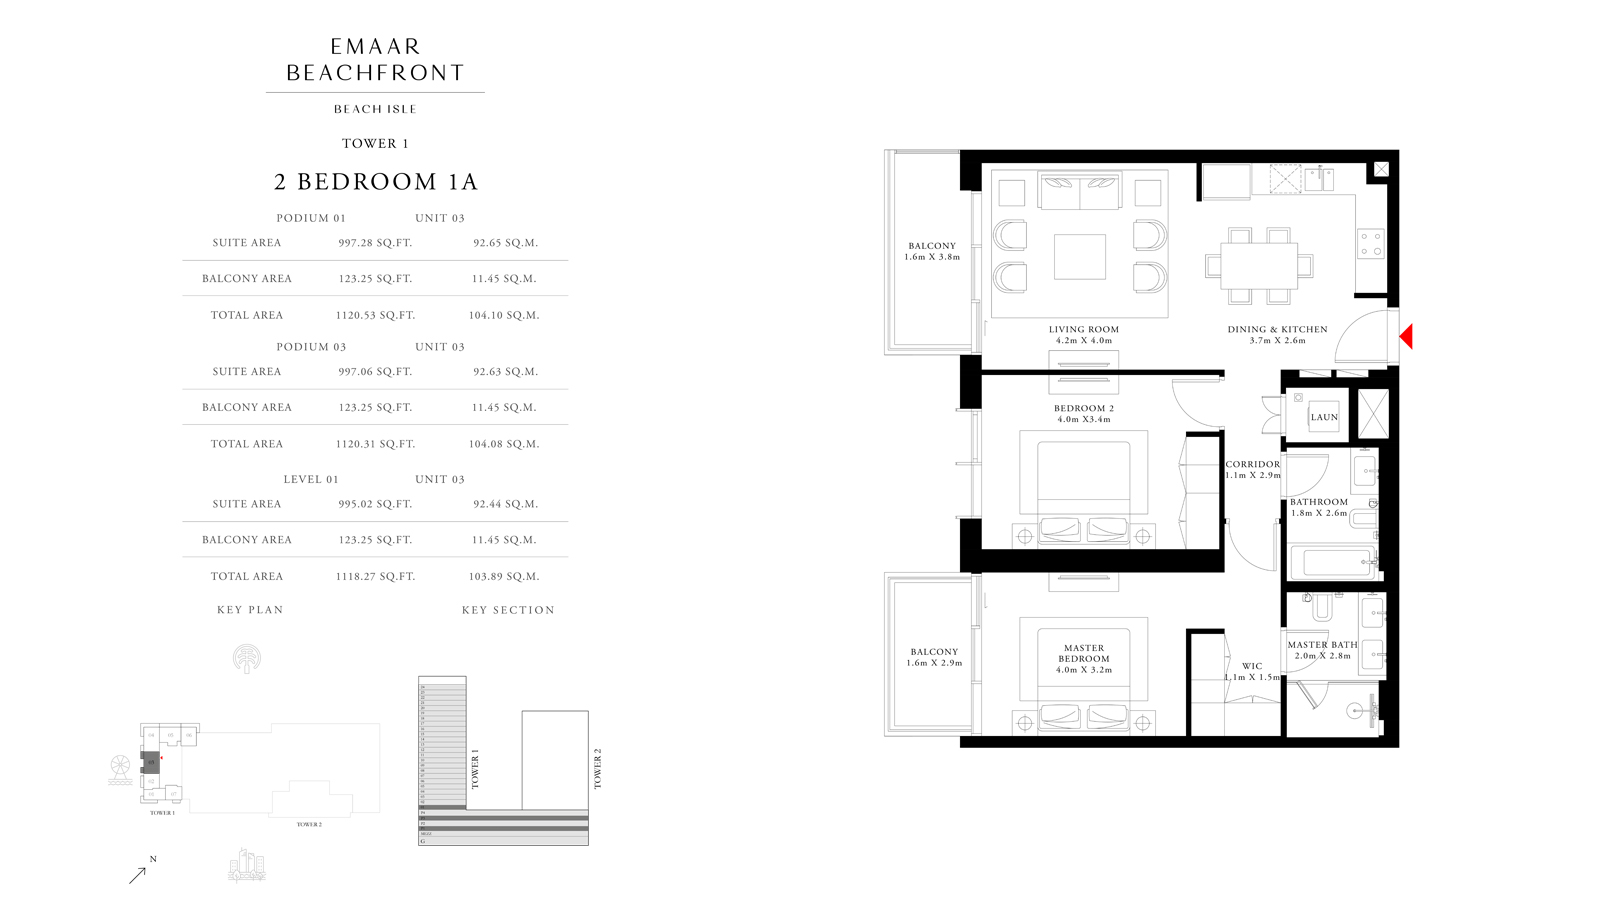 2 Bedroom 1A Tower 1, Size 1118 sq ft